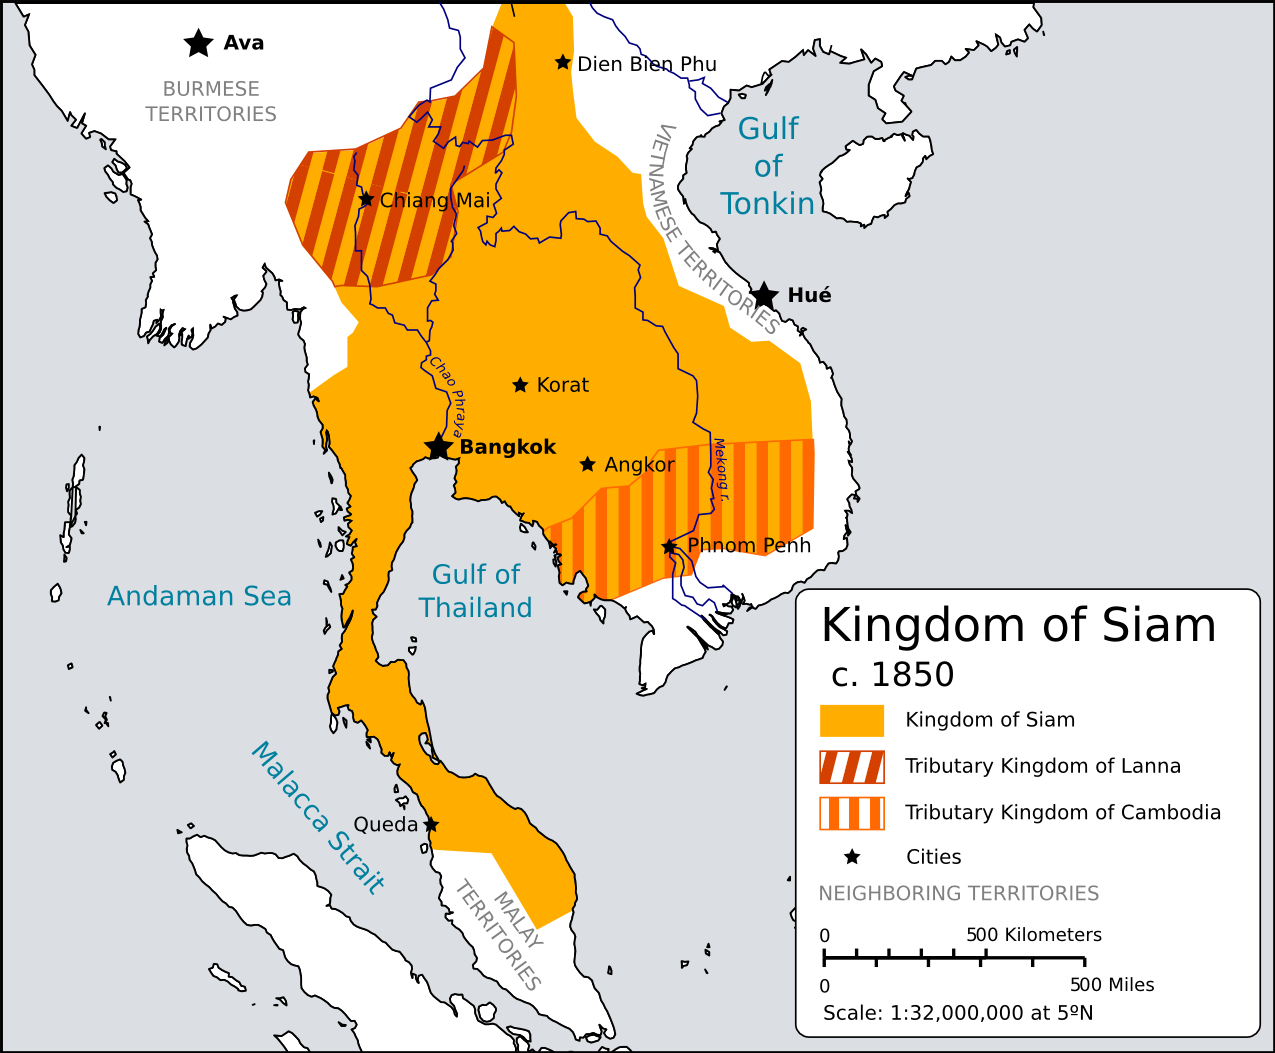 Kingdom of Siam